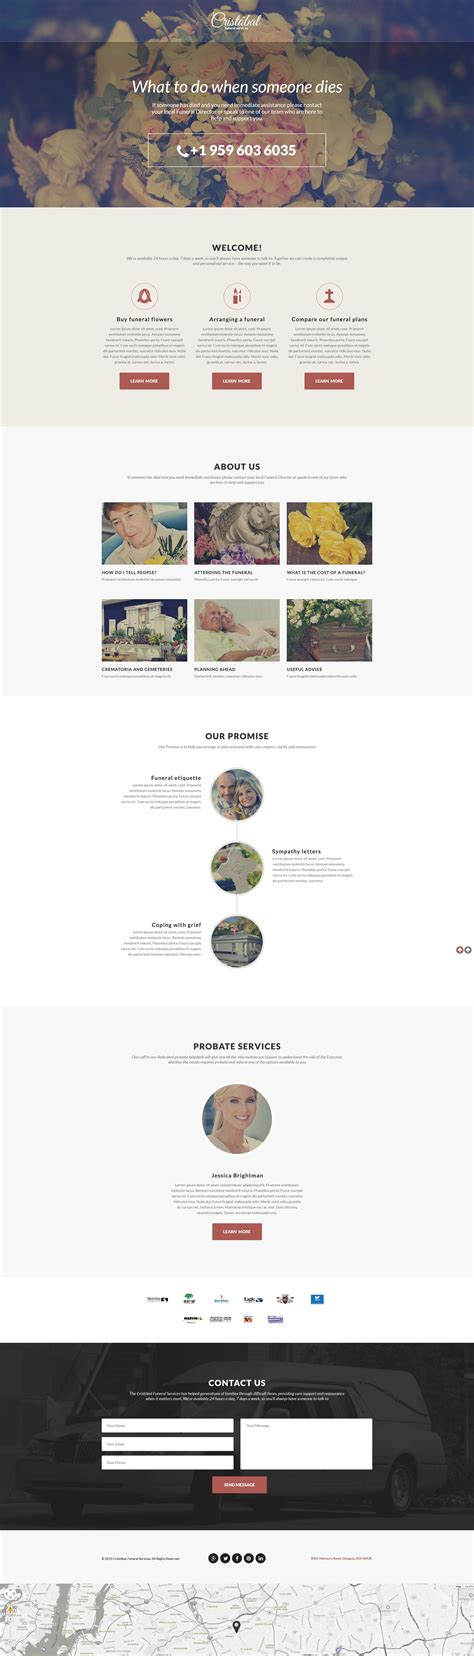 responsive landing page templates funeral services responsive landing page template 55577